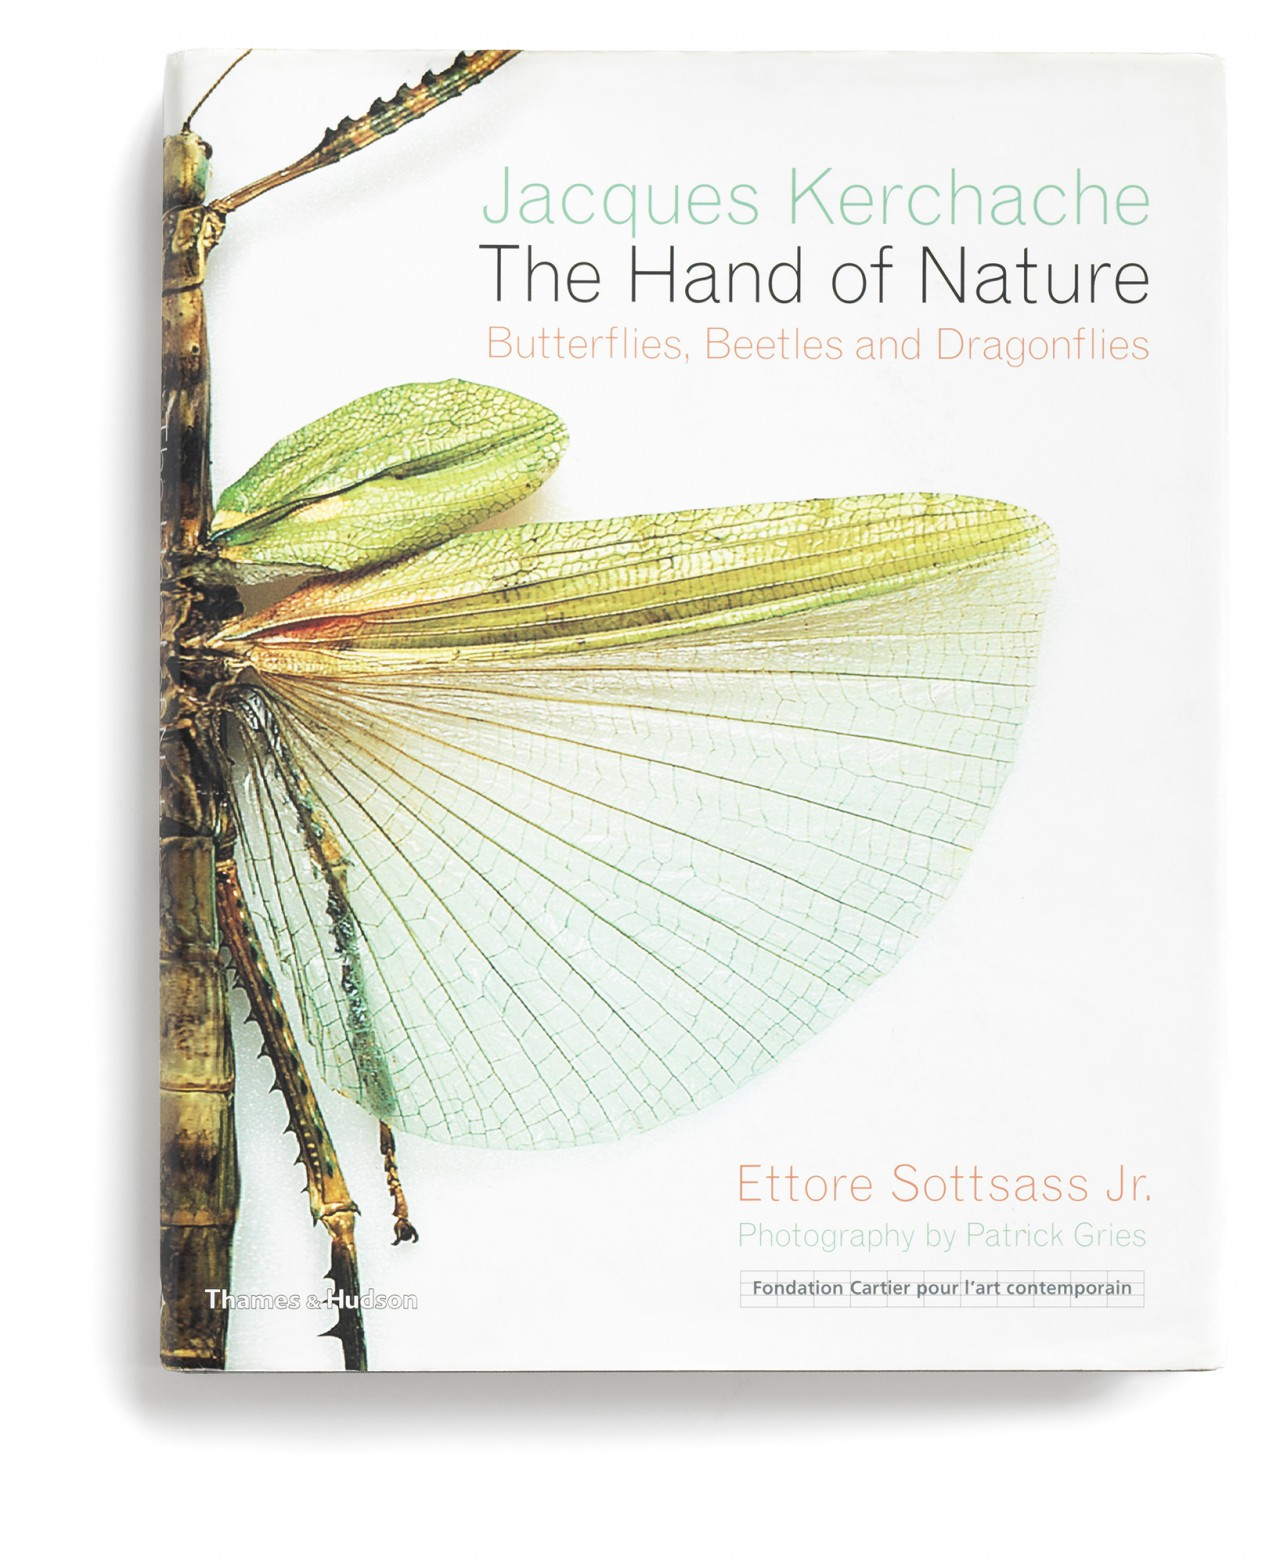 Patrick Gries The Hand of Nature<br/>Thames & Hudson